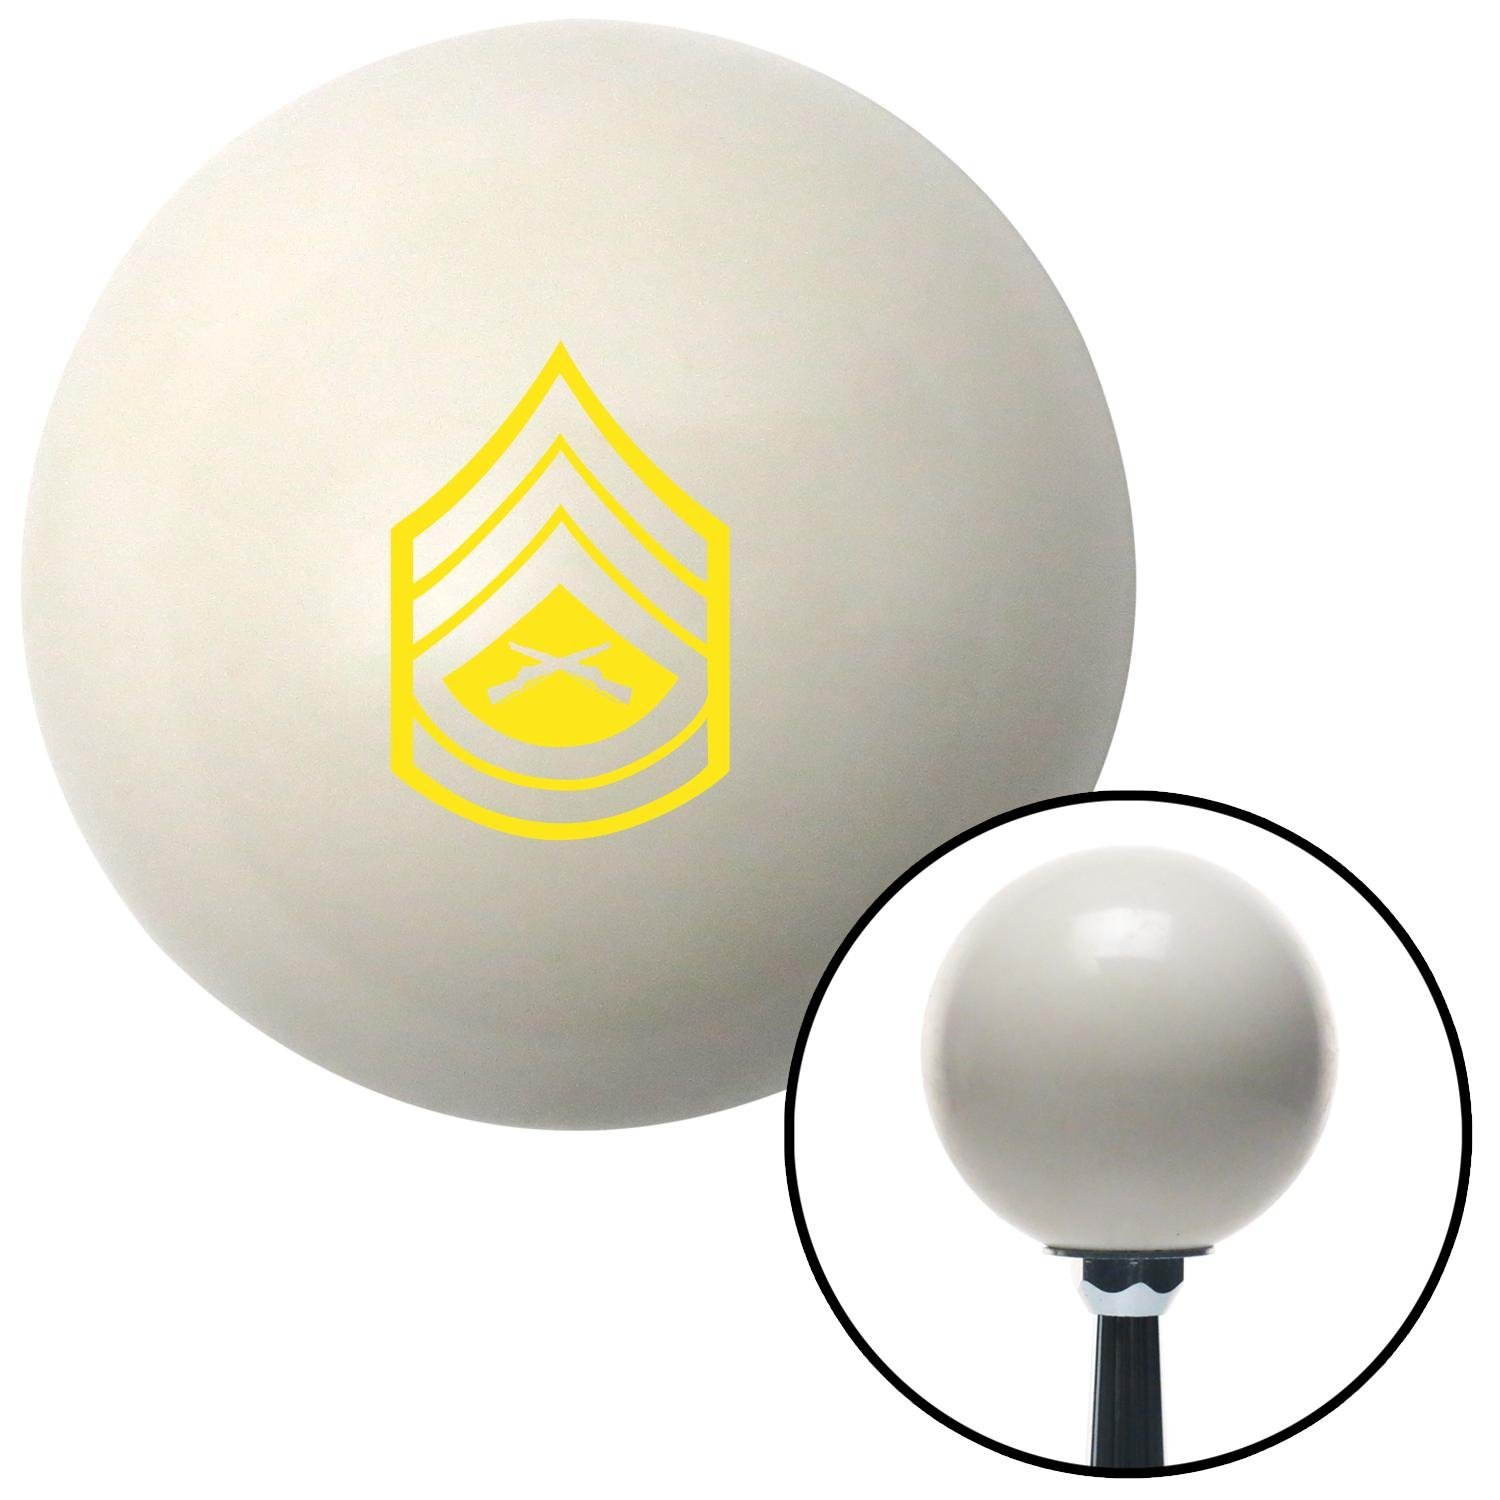 Yellow 06 Gunnery Sergeant American Shifter 40730 Ivory Shift Knob with 16mm x 1.5 Insert